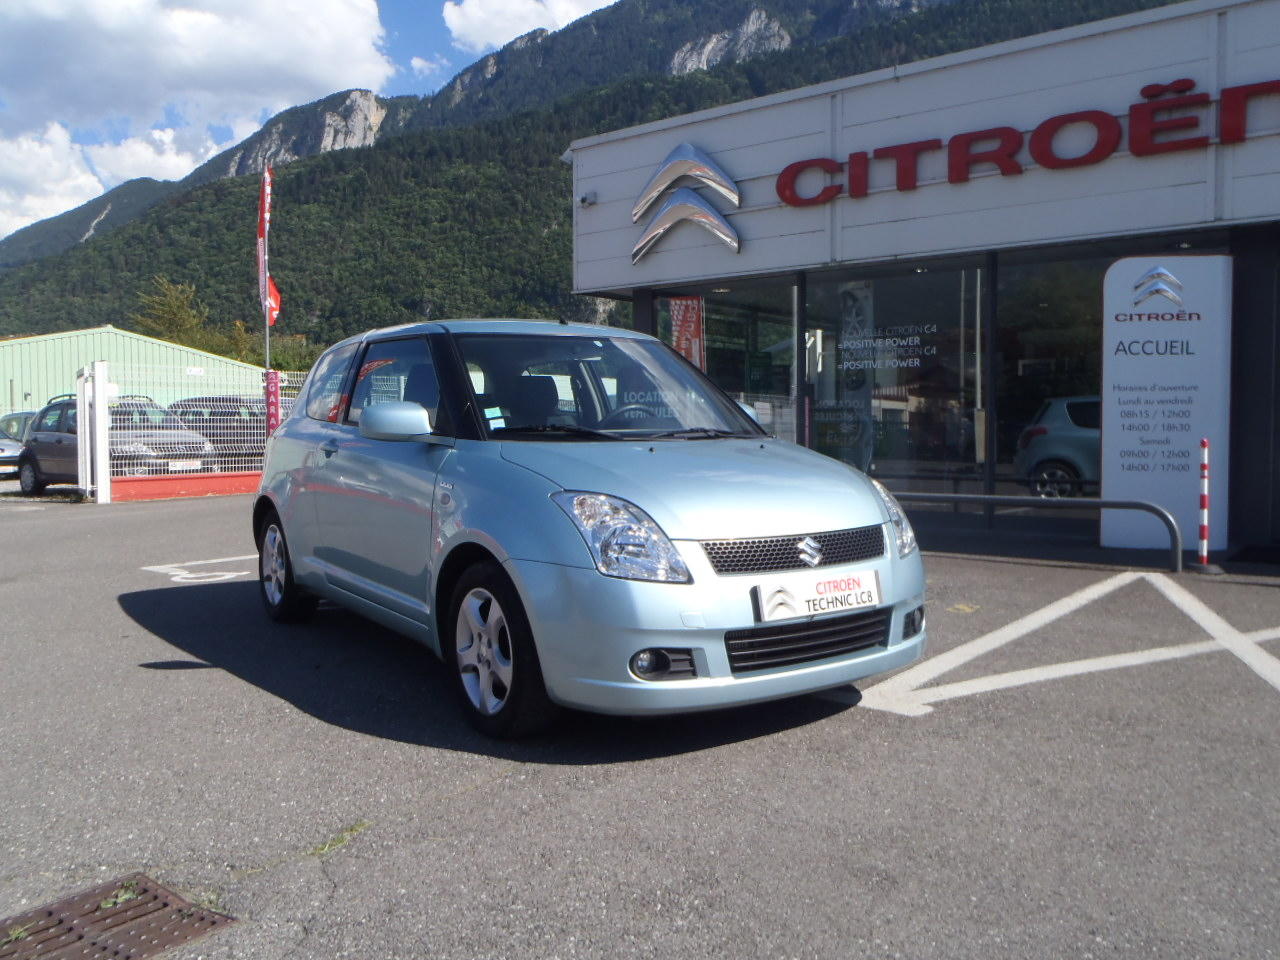 voiture suzuki swift 1 3 ddis gl occasion diesel 2006 113700 km 4500 bonneville. Black Bedroom Furniture Sets. Home Design Ideas